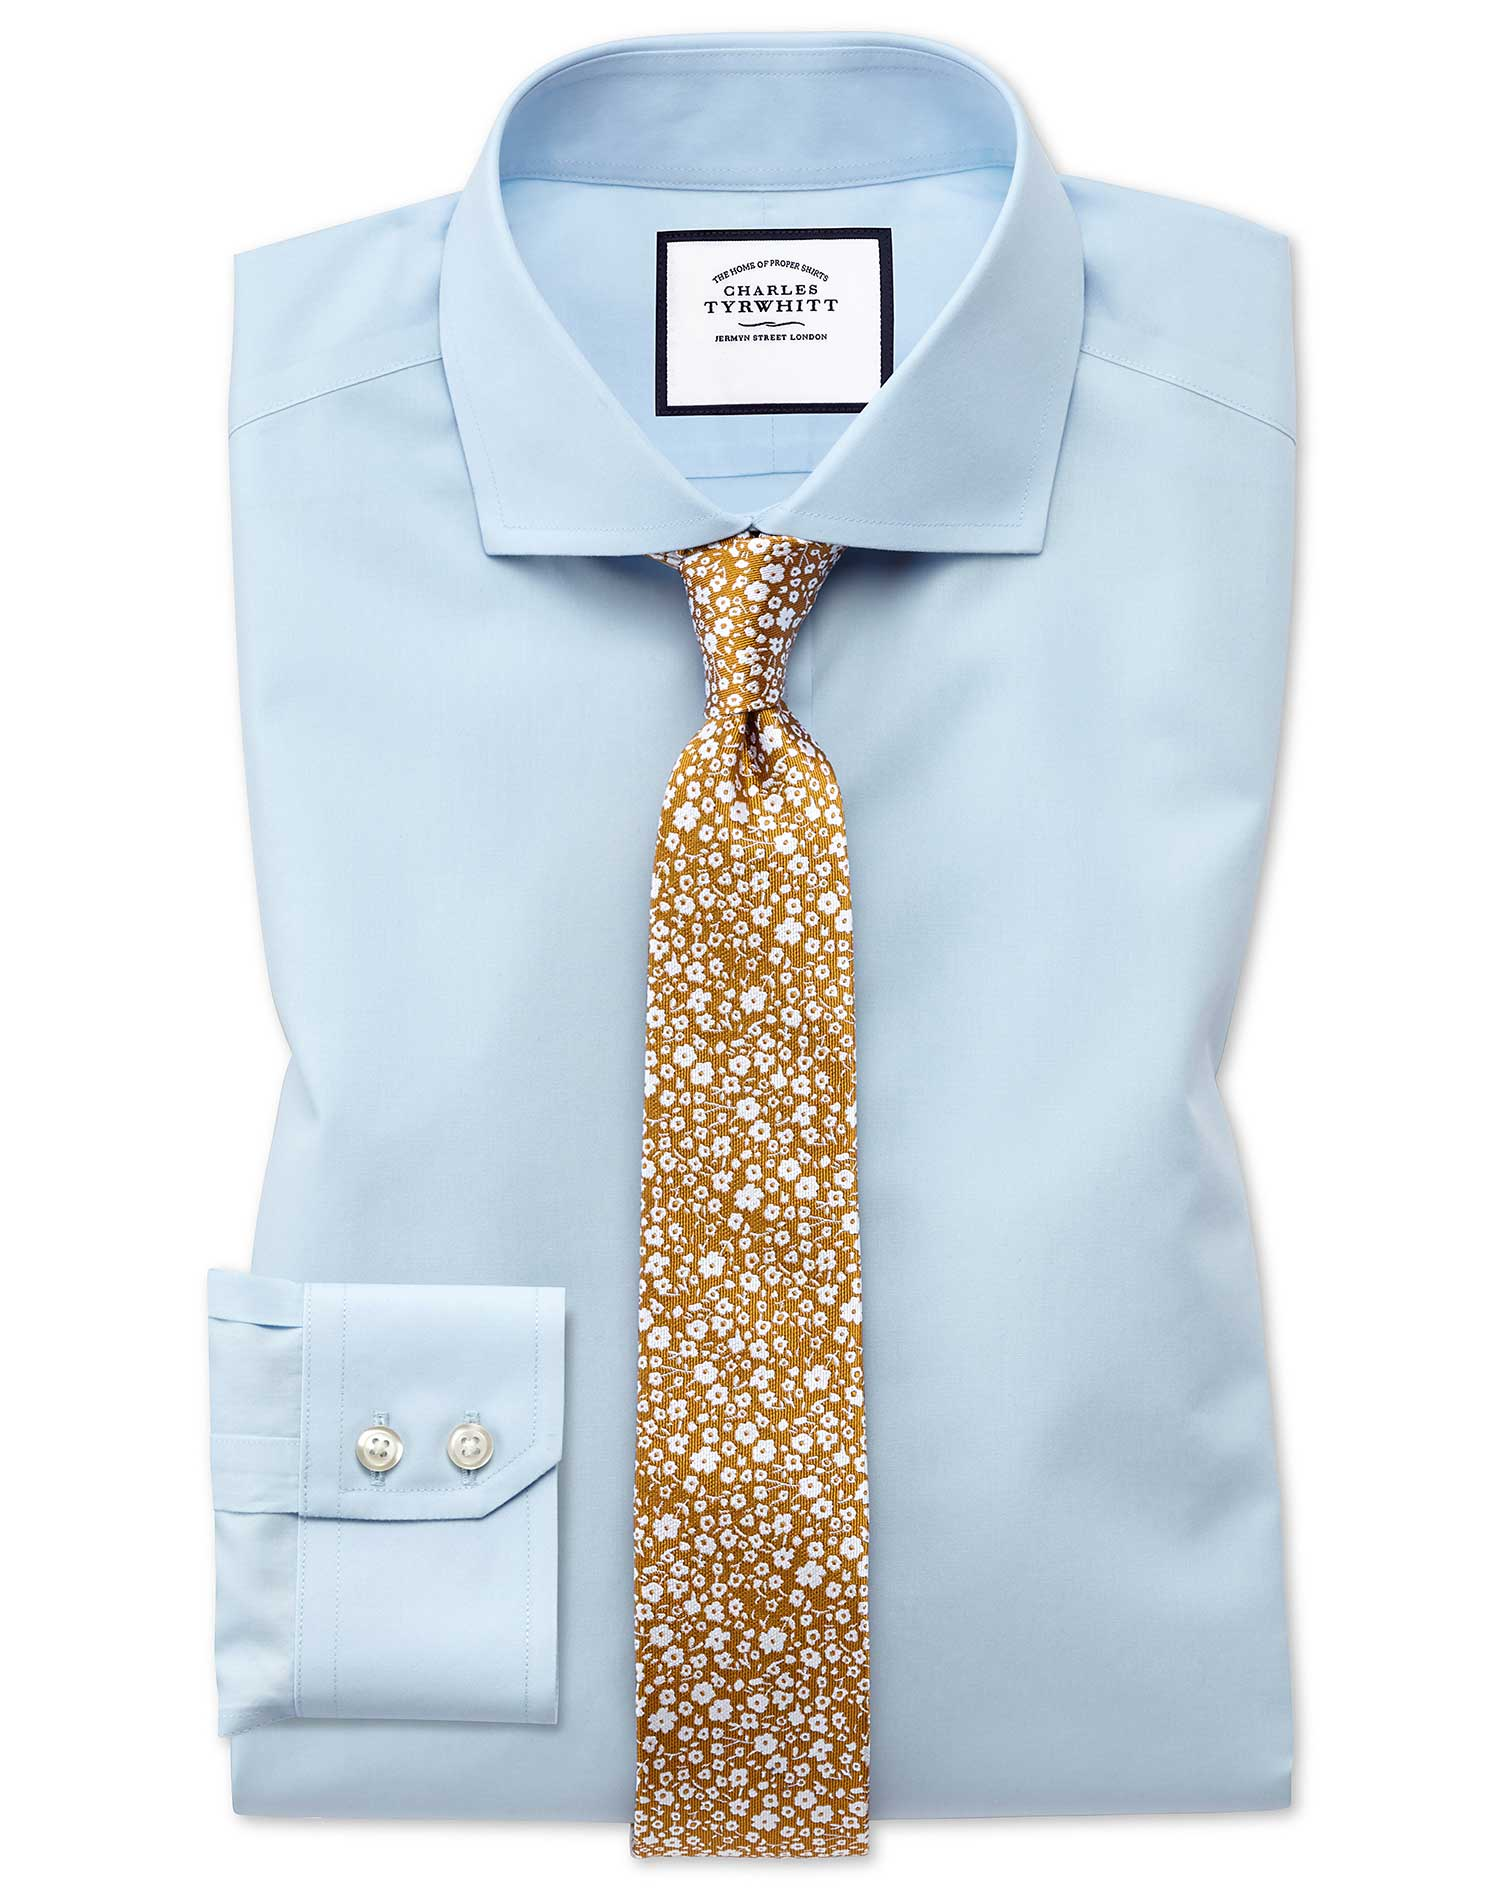 Slim Fit Cutaway Non-Iron Natural Cool Sky Blue Cotton Formal Shirt Single Cuff Size 15.5/35 by Char